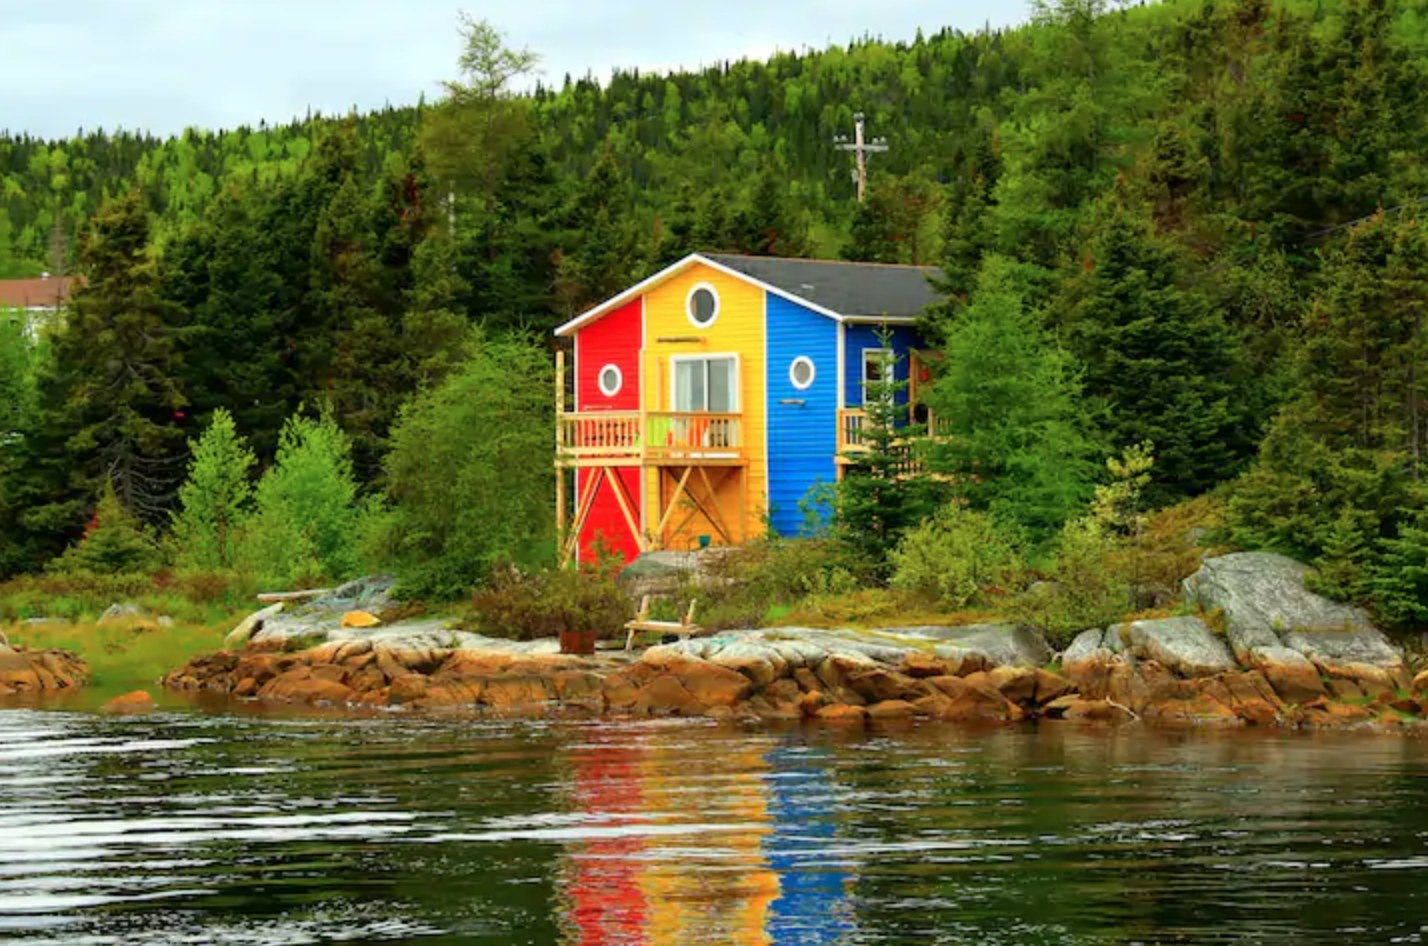 A two-story home painted in red, yellow, and blue stripes with circular windows sits on some rocks near the water in front of a forest.